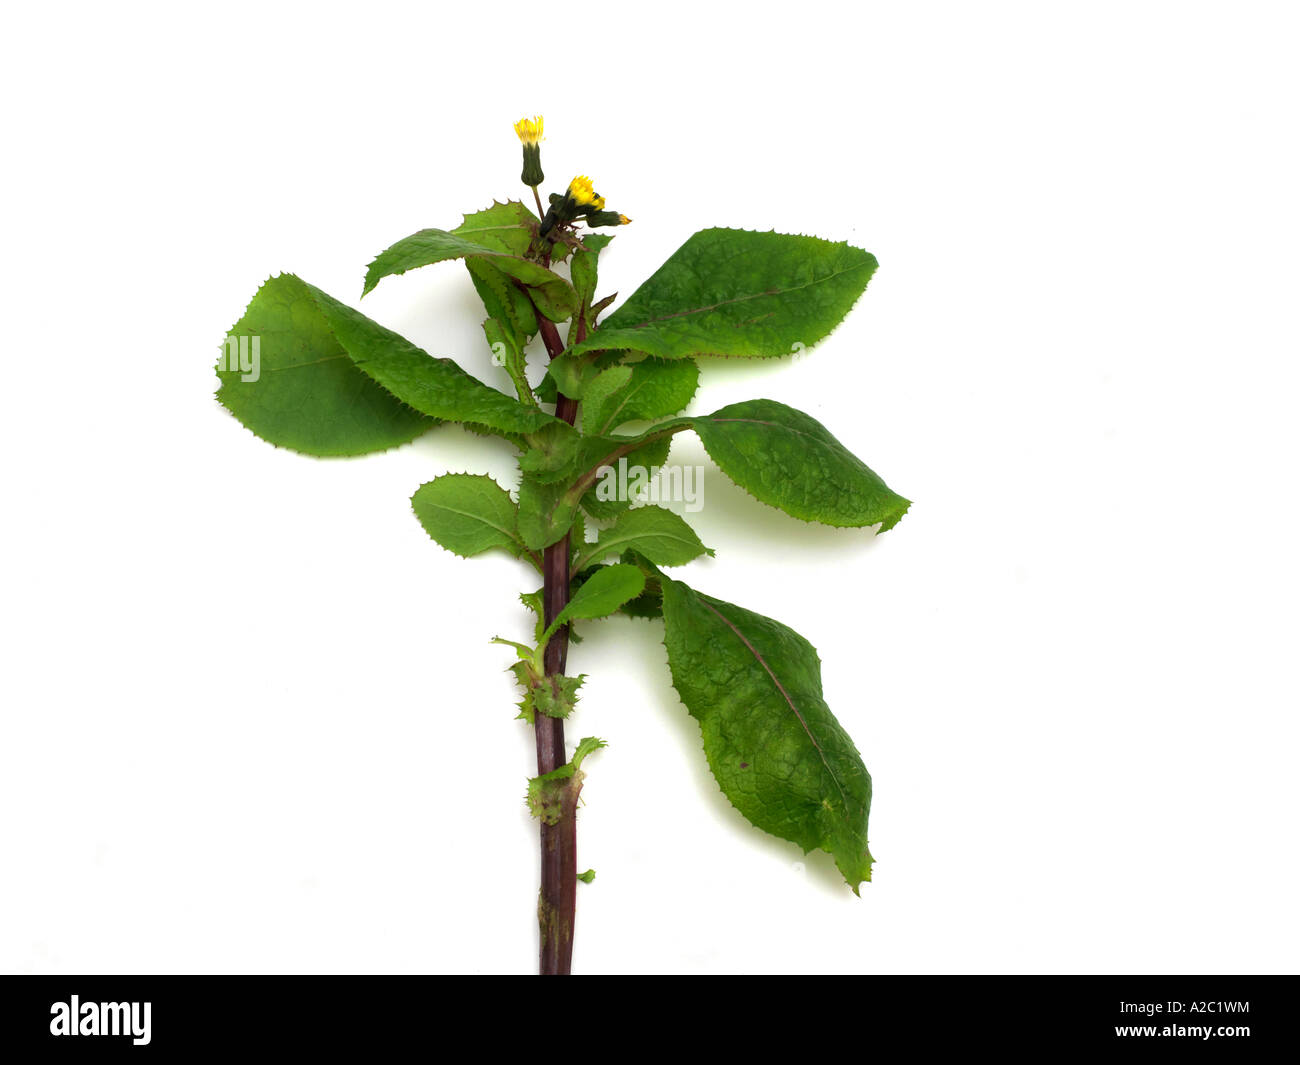 Sow Thistle - Stock Image